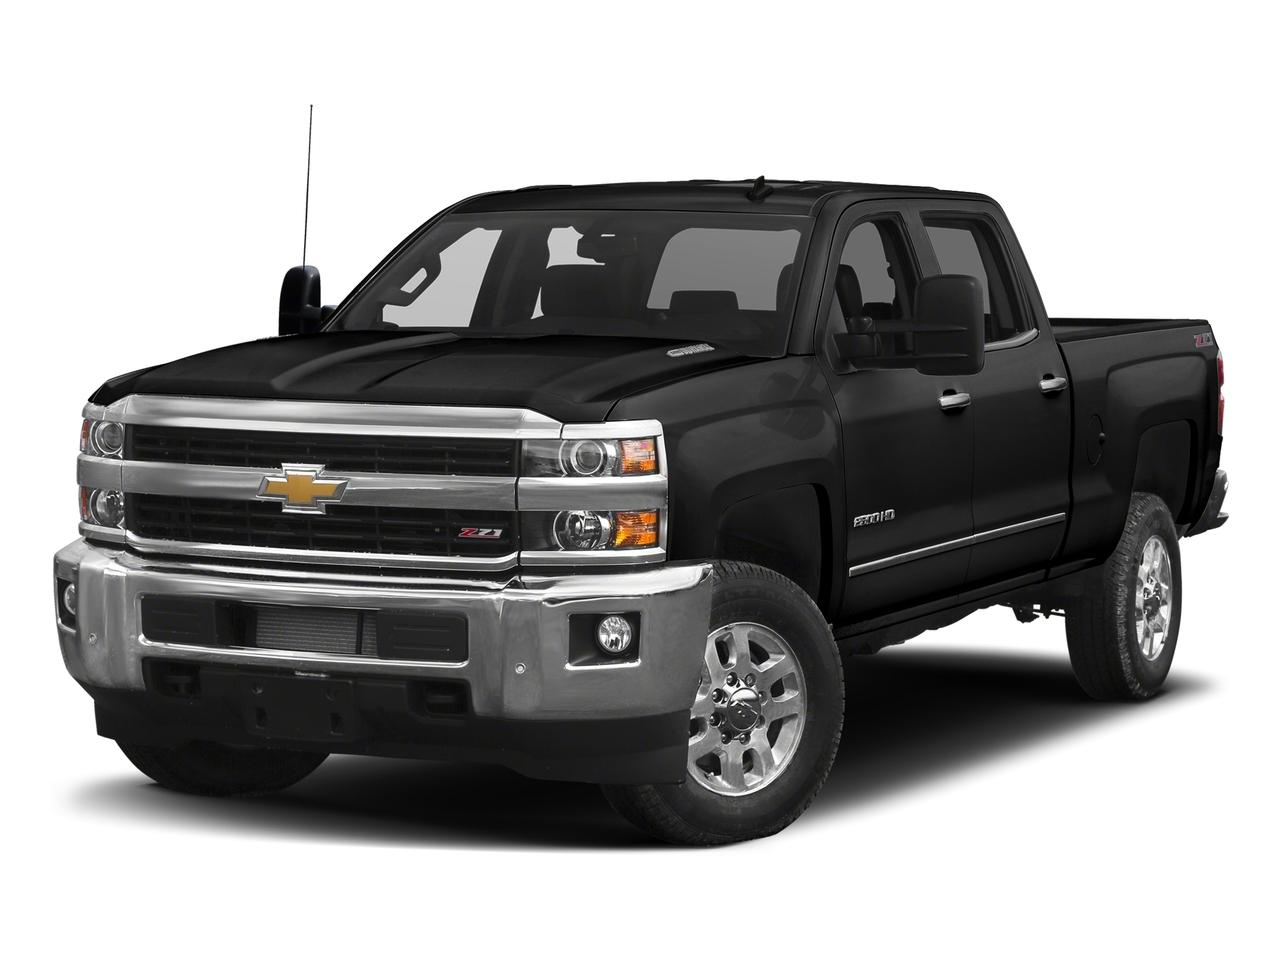 2018 Chevrolet Silverado 2500HD Vehicle Photo in Owensboro, KY 42303